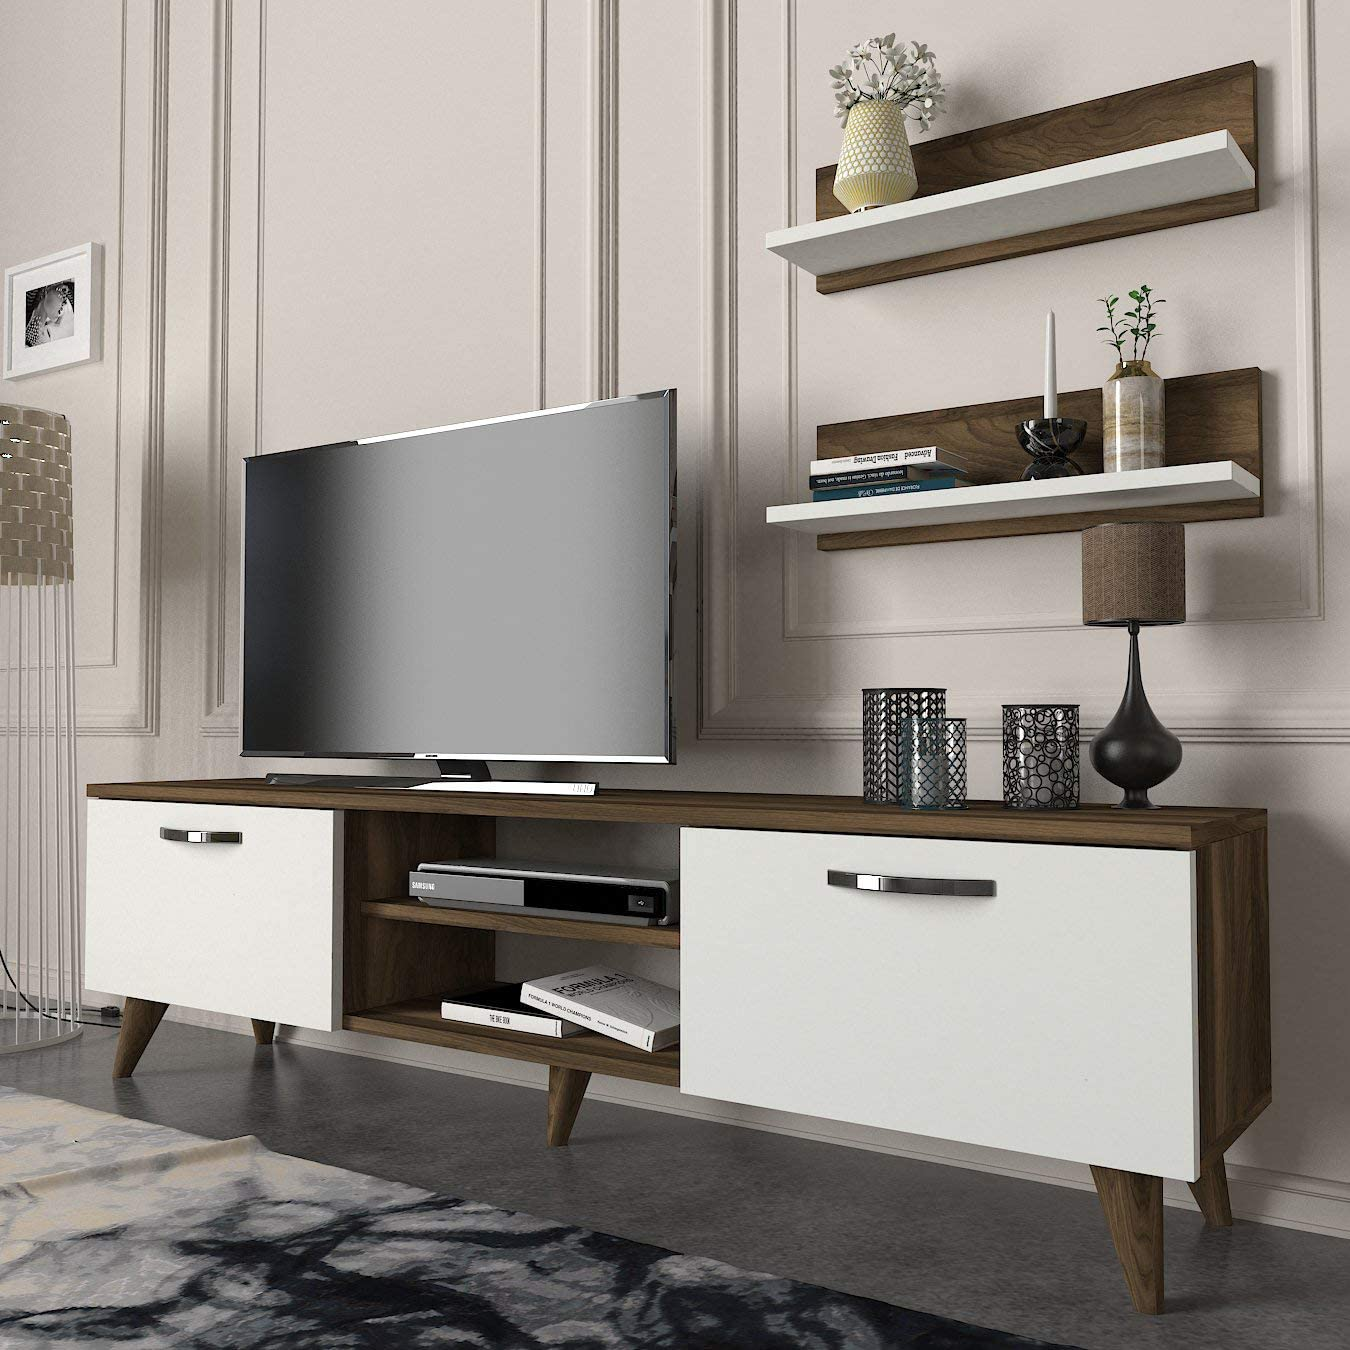 MAKENZA Design TV Stand Unit Modern Studio Collection TV Media Stand, Living Room Furniture with Cabinet & Ample Storage Shelves, Entertainment Center for Home & Office (White-Walnut)